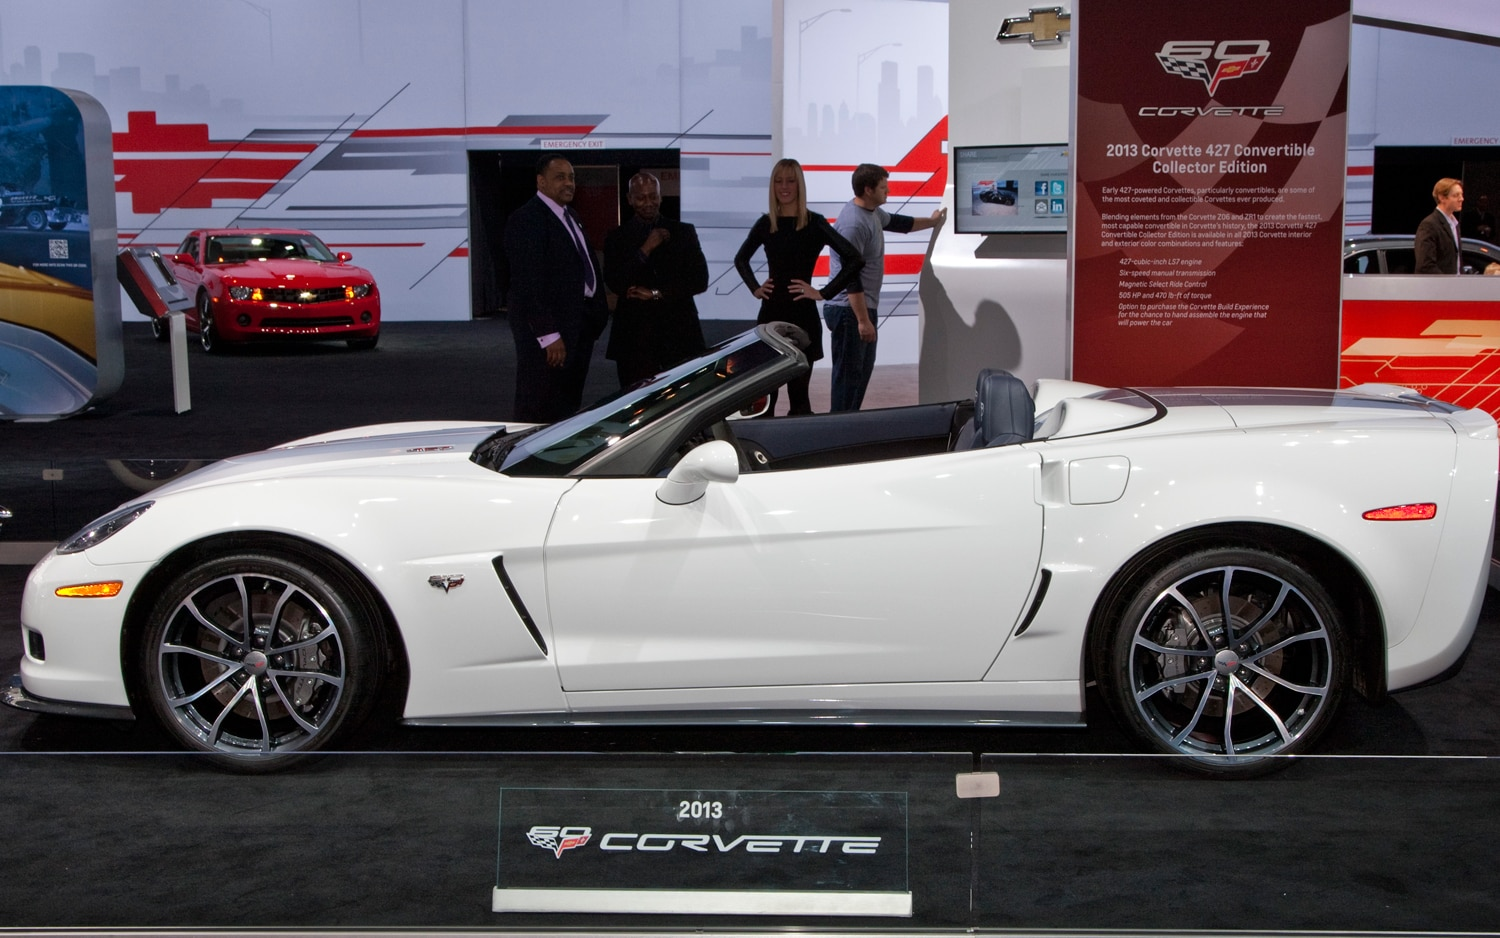 Corvette 427 Convertible Collector Edition Side 21